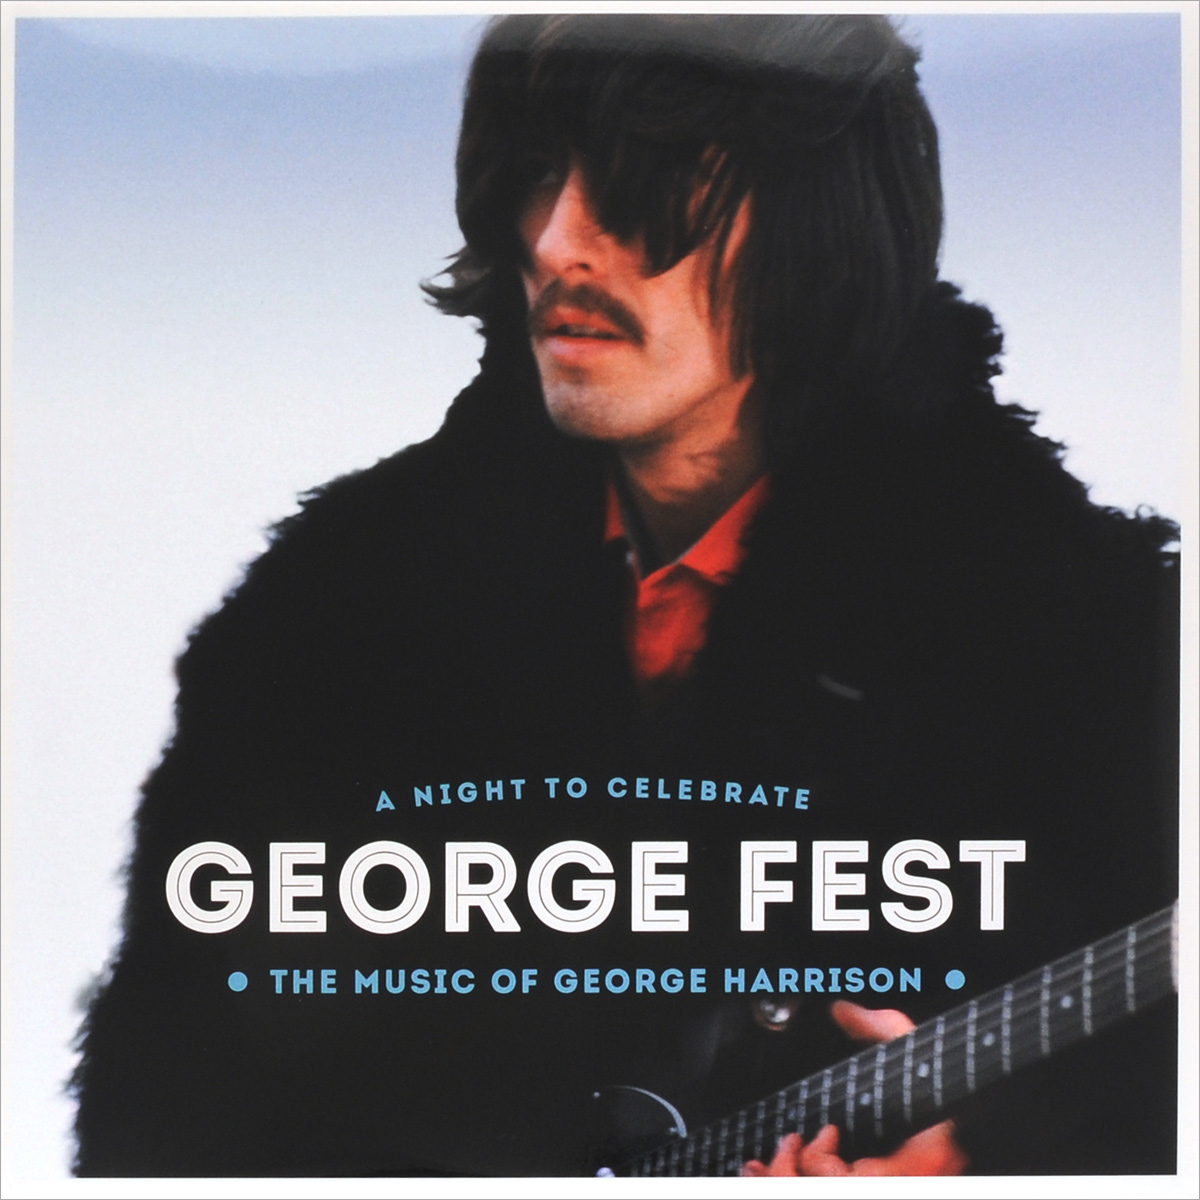 Conan O'Brien George Fest. A Night To Celebrate The Music Of George Harrison (3 LP) george harrison george harrison wonderwall music